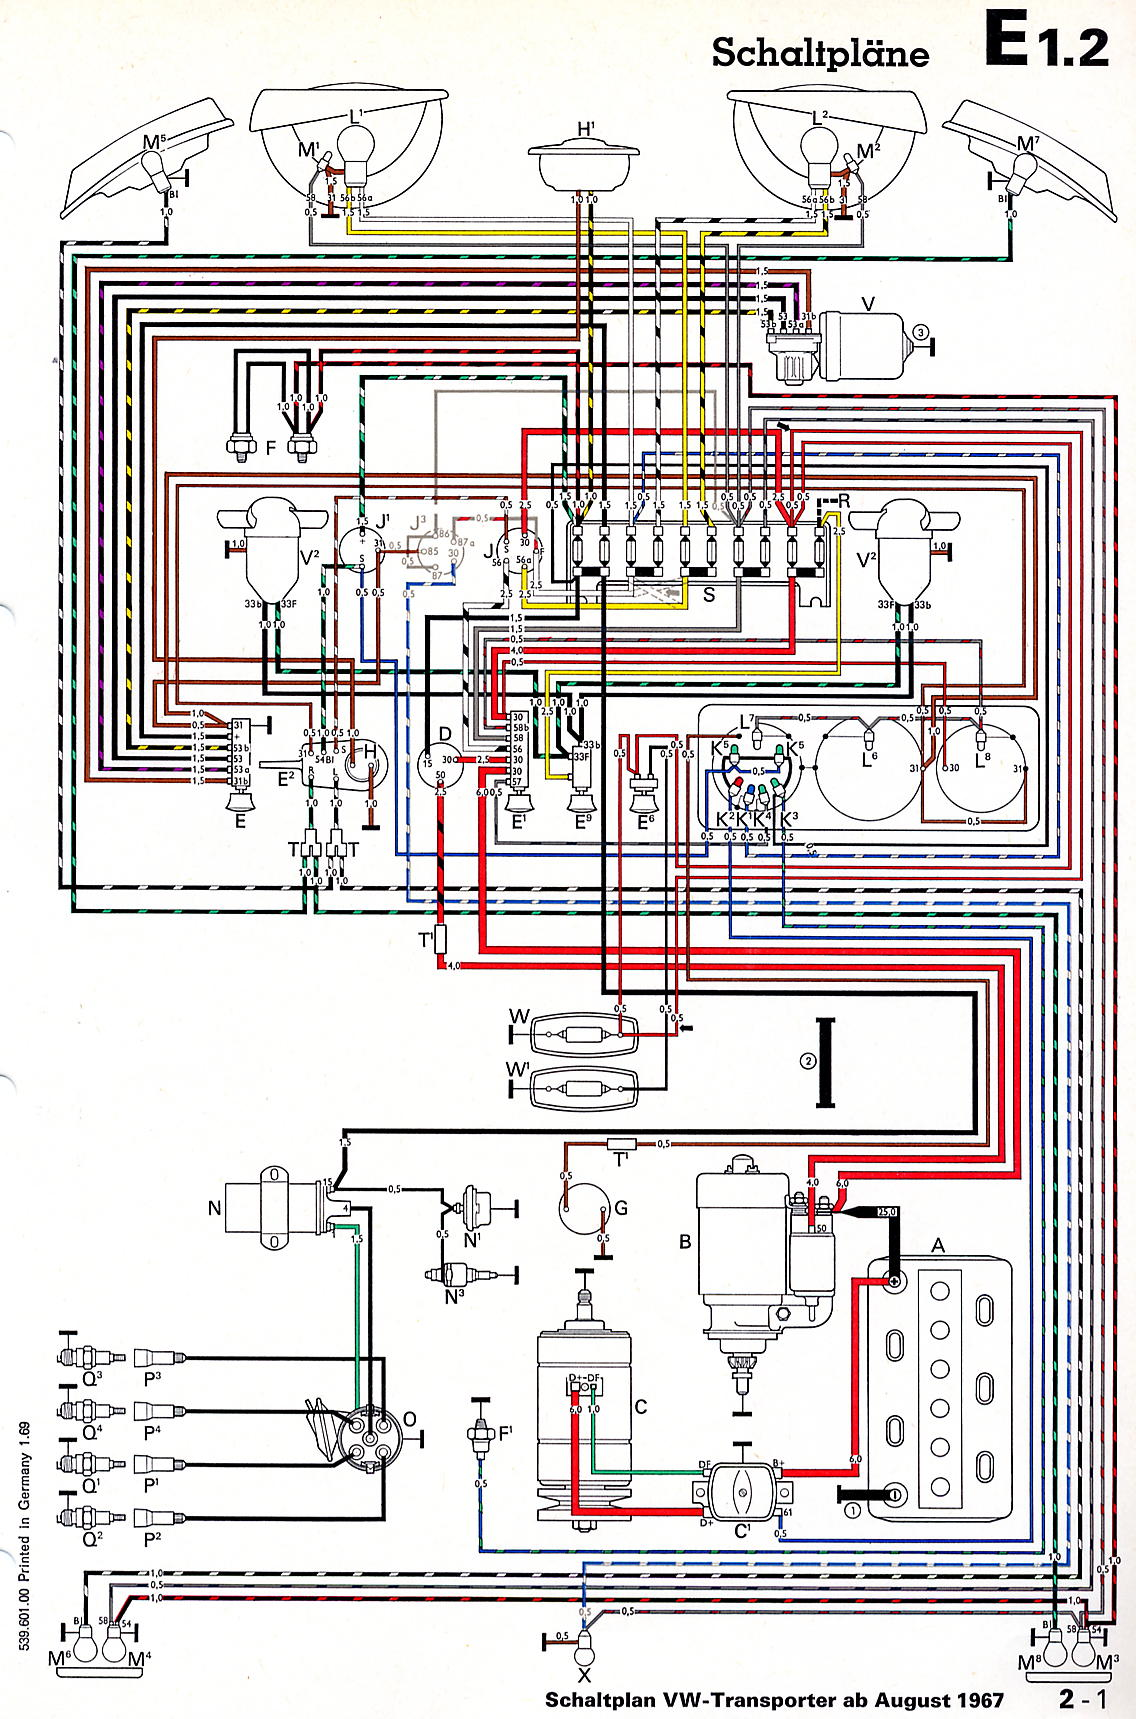 Transporter_from_August_1967 bad boy buggy wiring diagram 36 volt ezgo wiring diagram 1997 vw dune buggy wiring diagram at panicattacktreatment.co